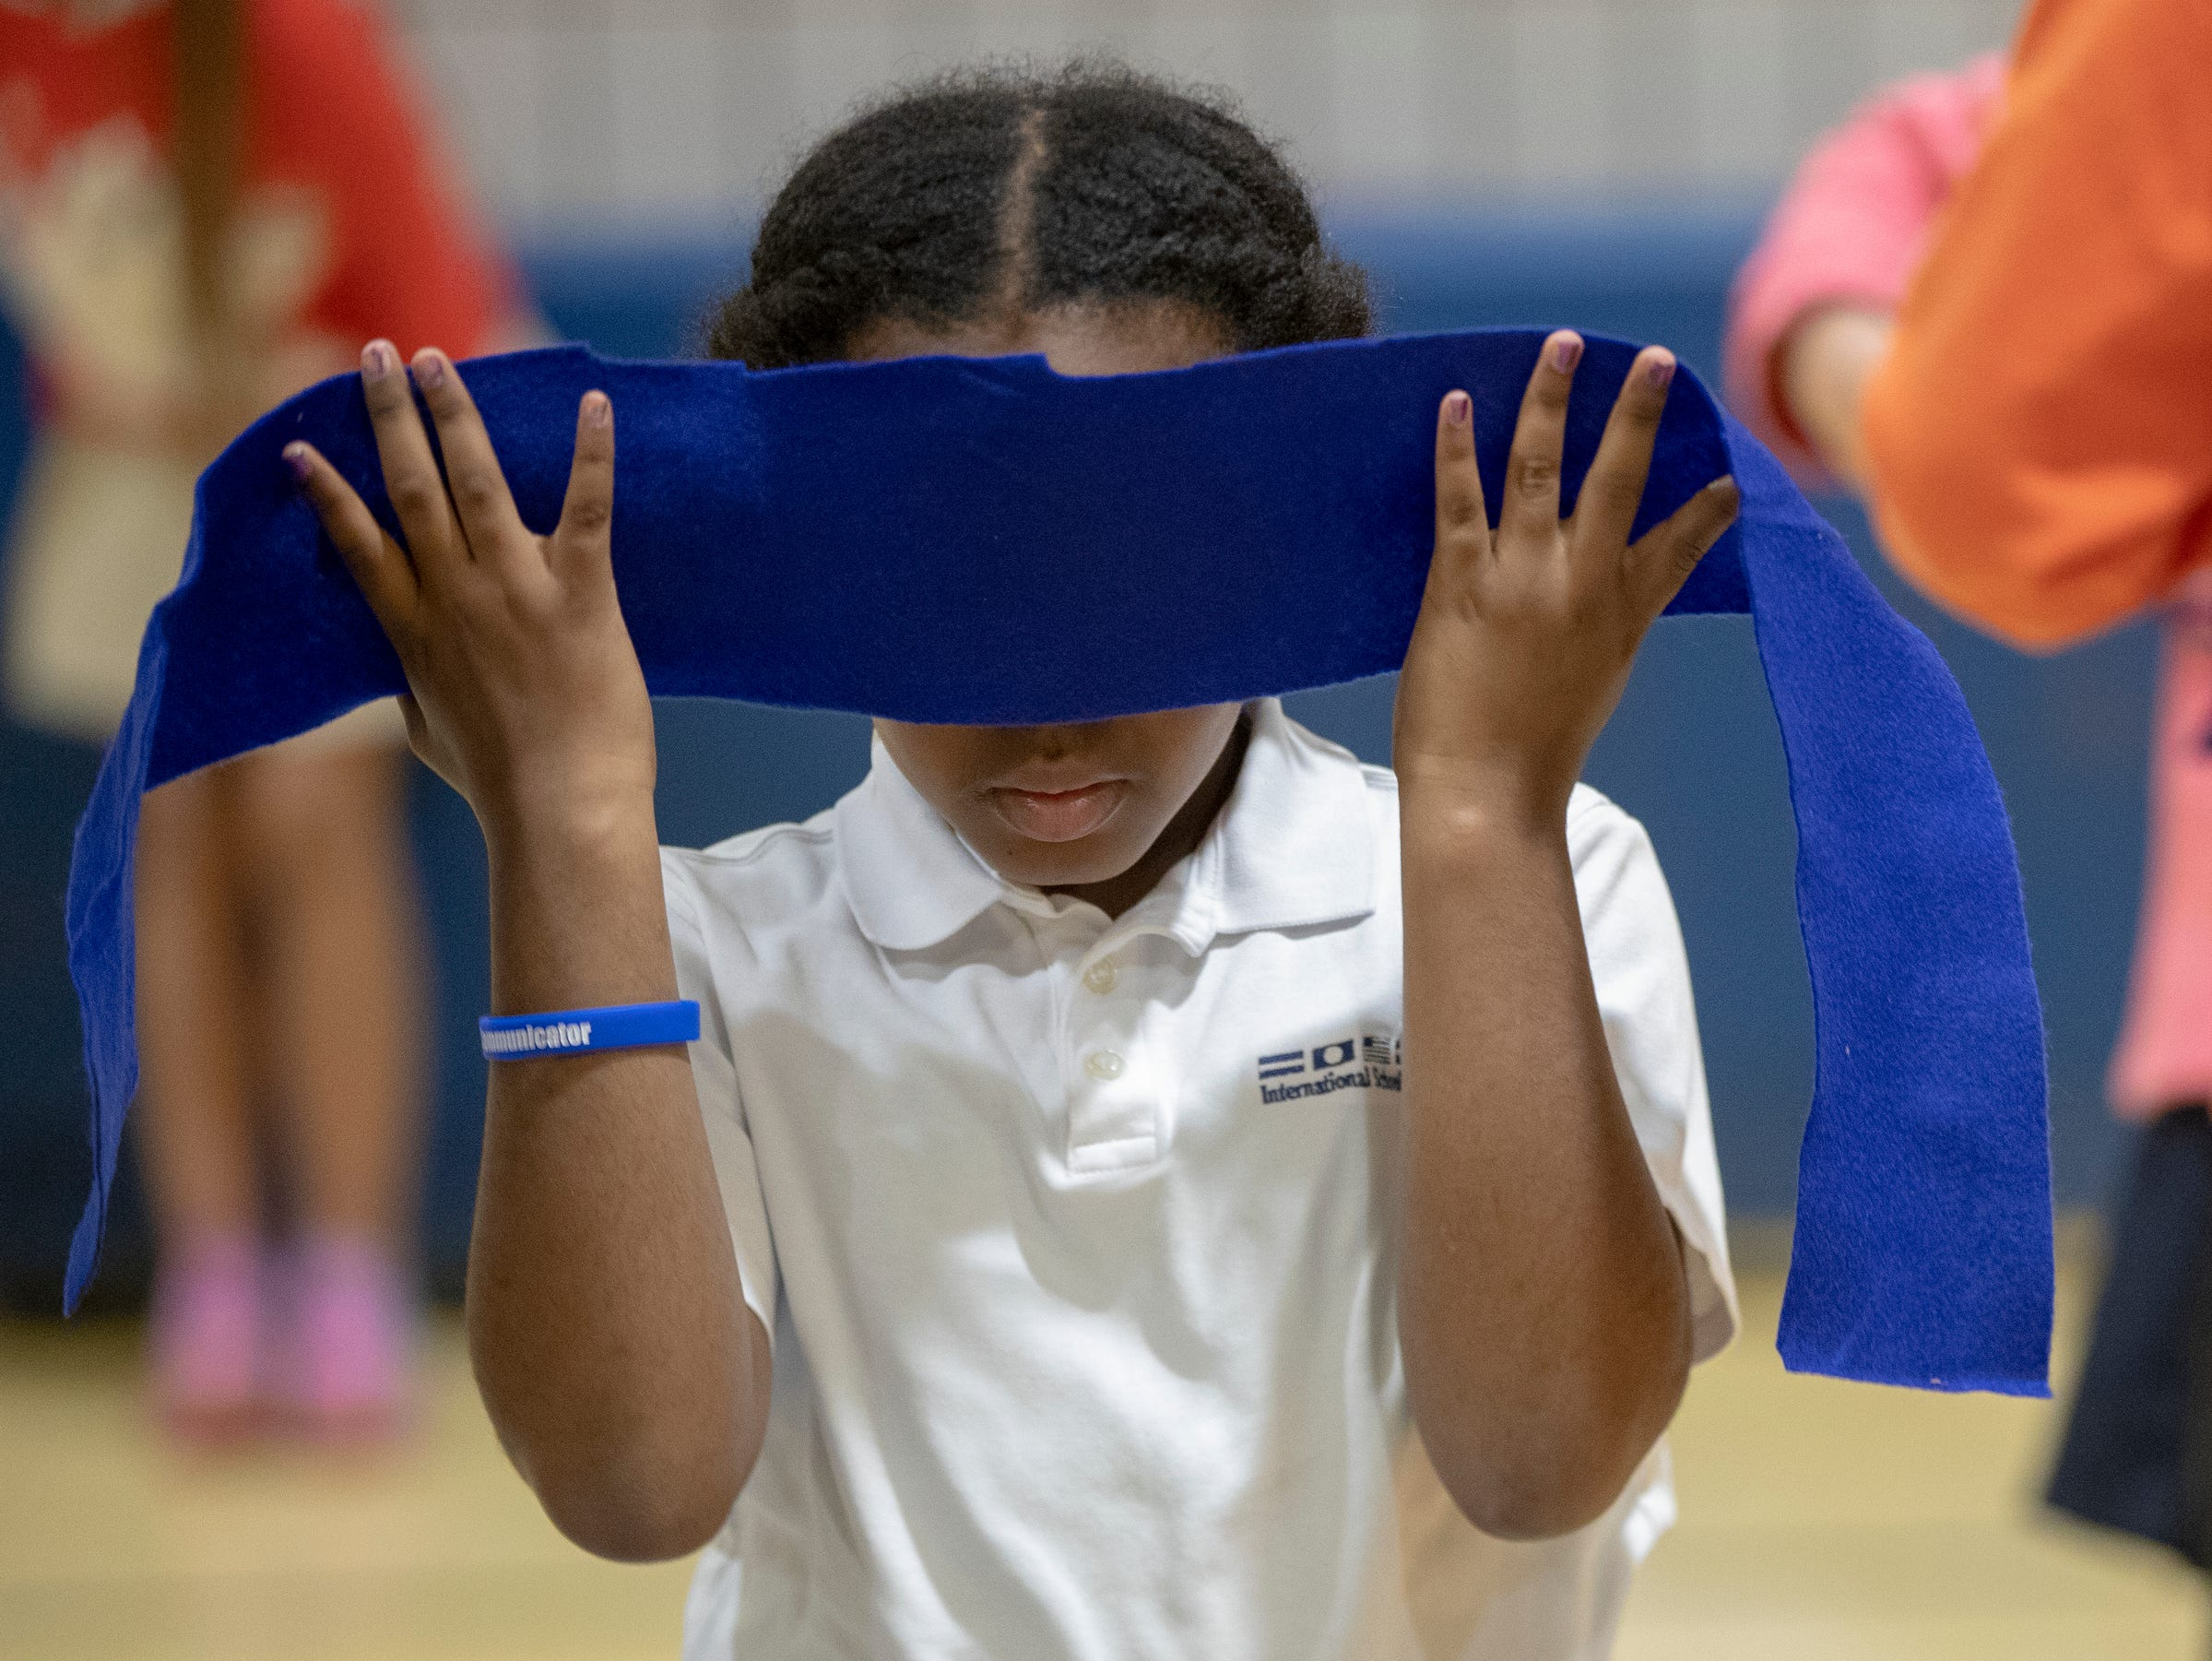 Alyssa Weems, 9, wraps a blindfold on her head during a workshop for fourth graders at International School of Indiana, Indianapolis, Thursday, May 1, 2019. In this exercise, she and other students are tasked with finding their 'family' in a darkened environment with only their voices and outstretched arms.